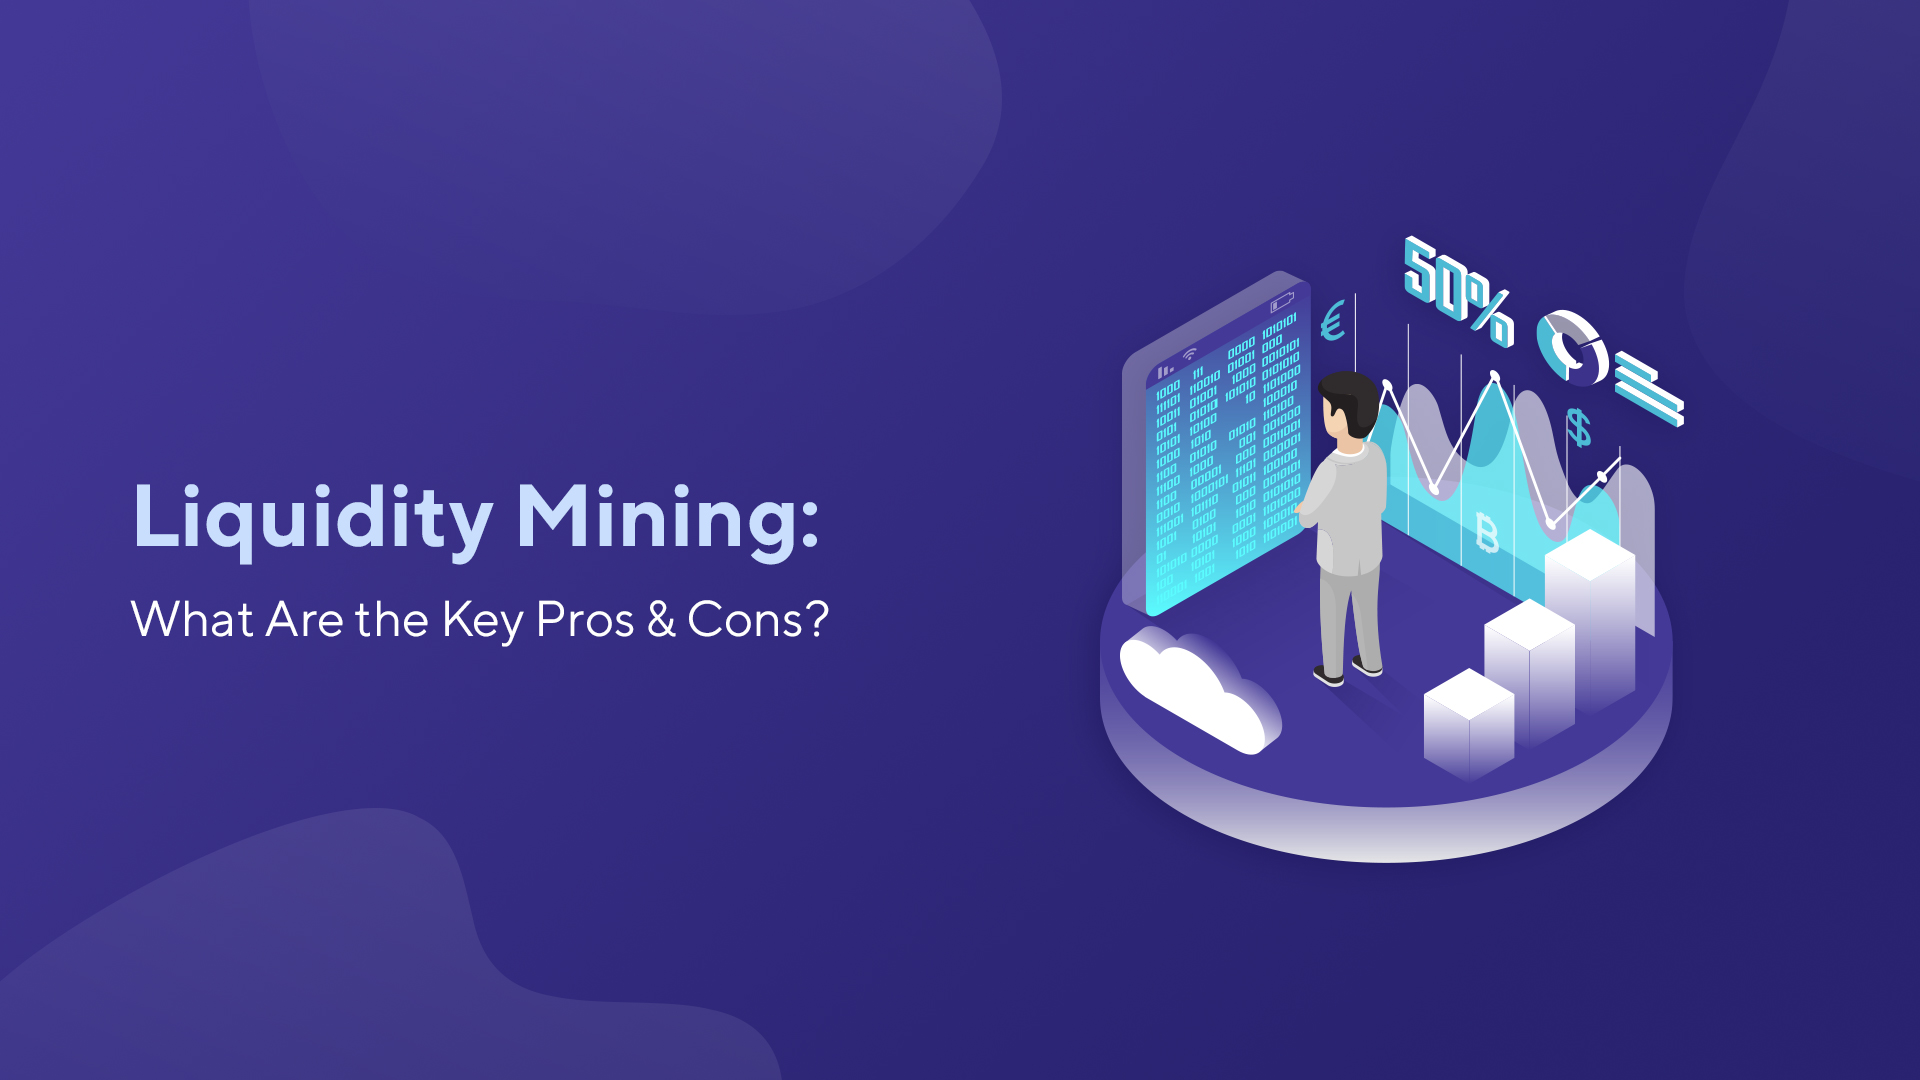 Liquidity Mining: What Are the Key Pros & Cons?